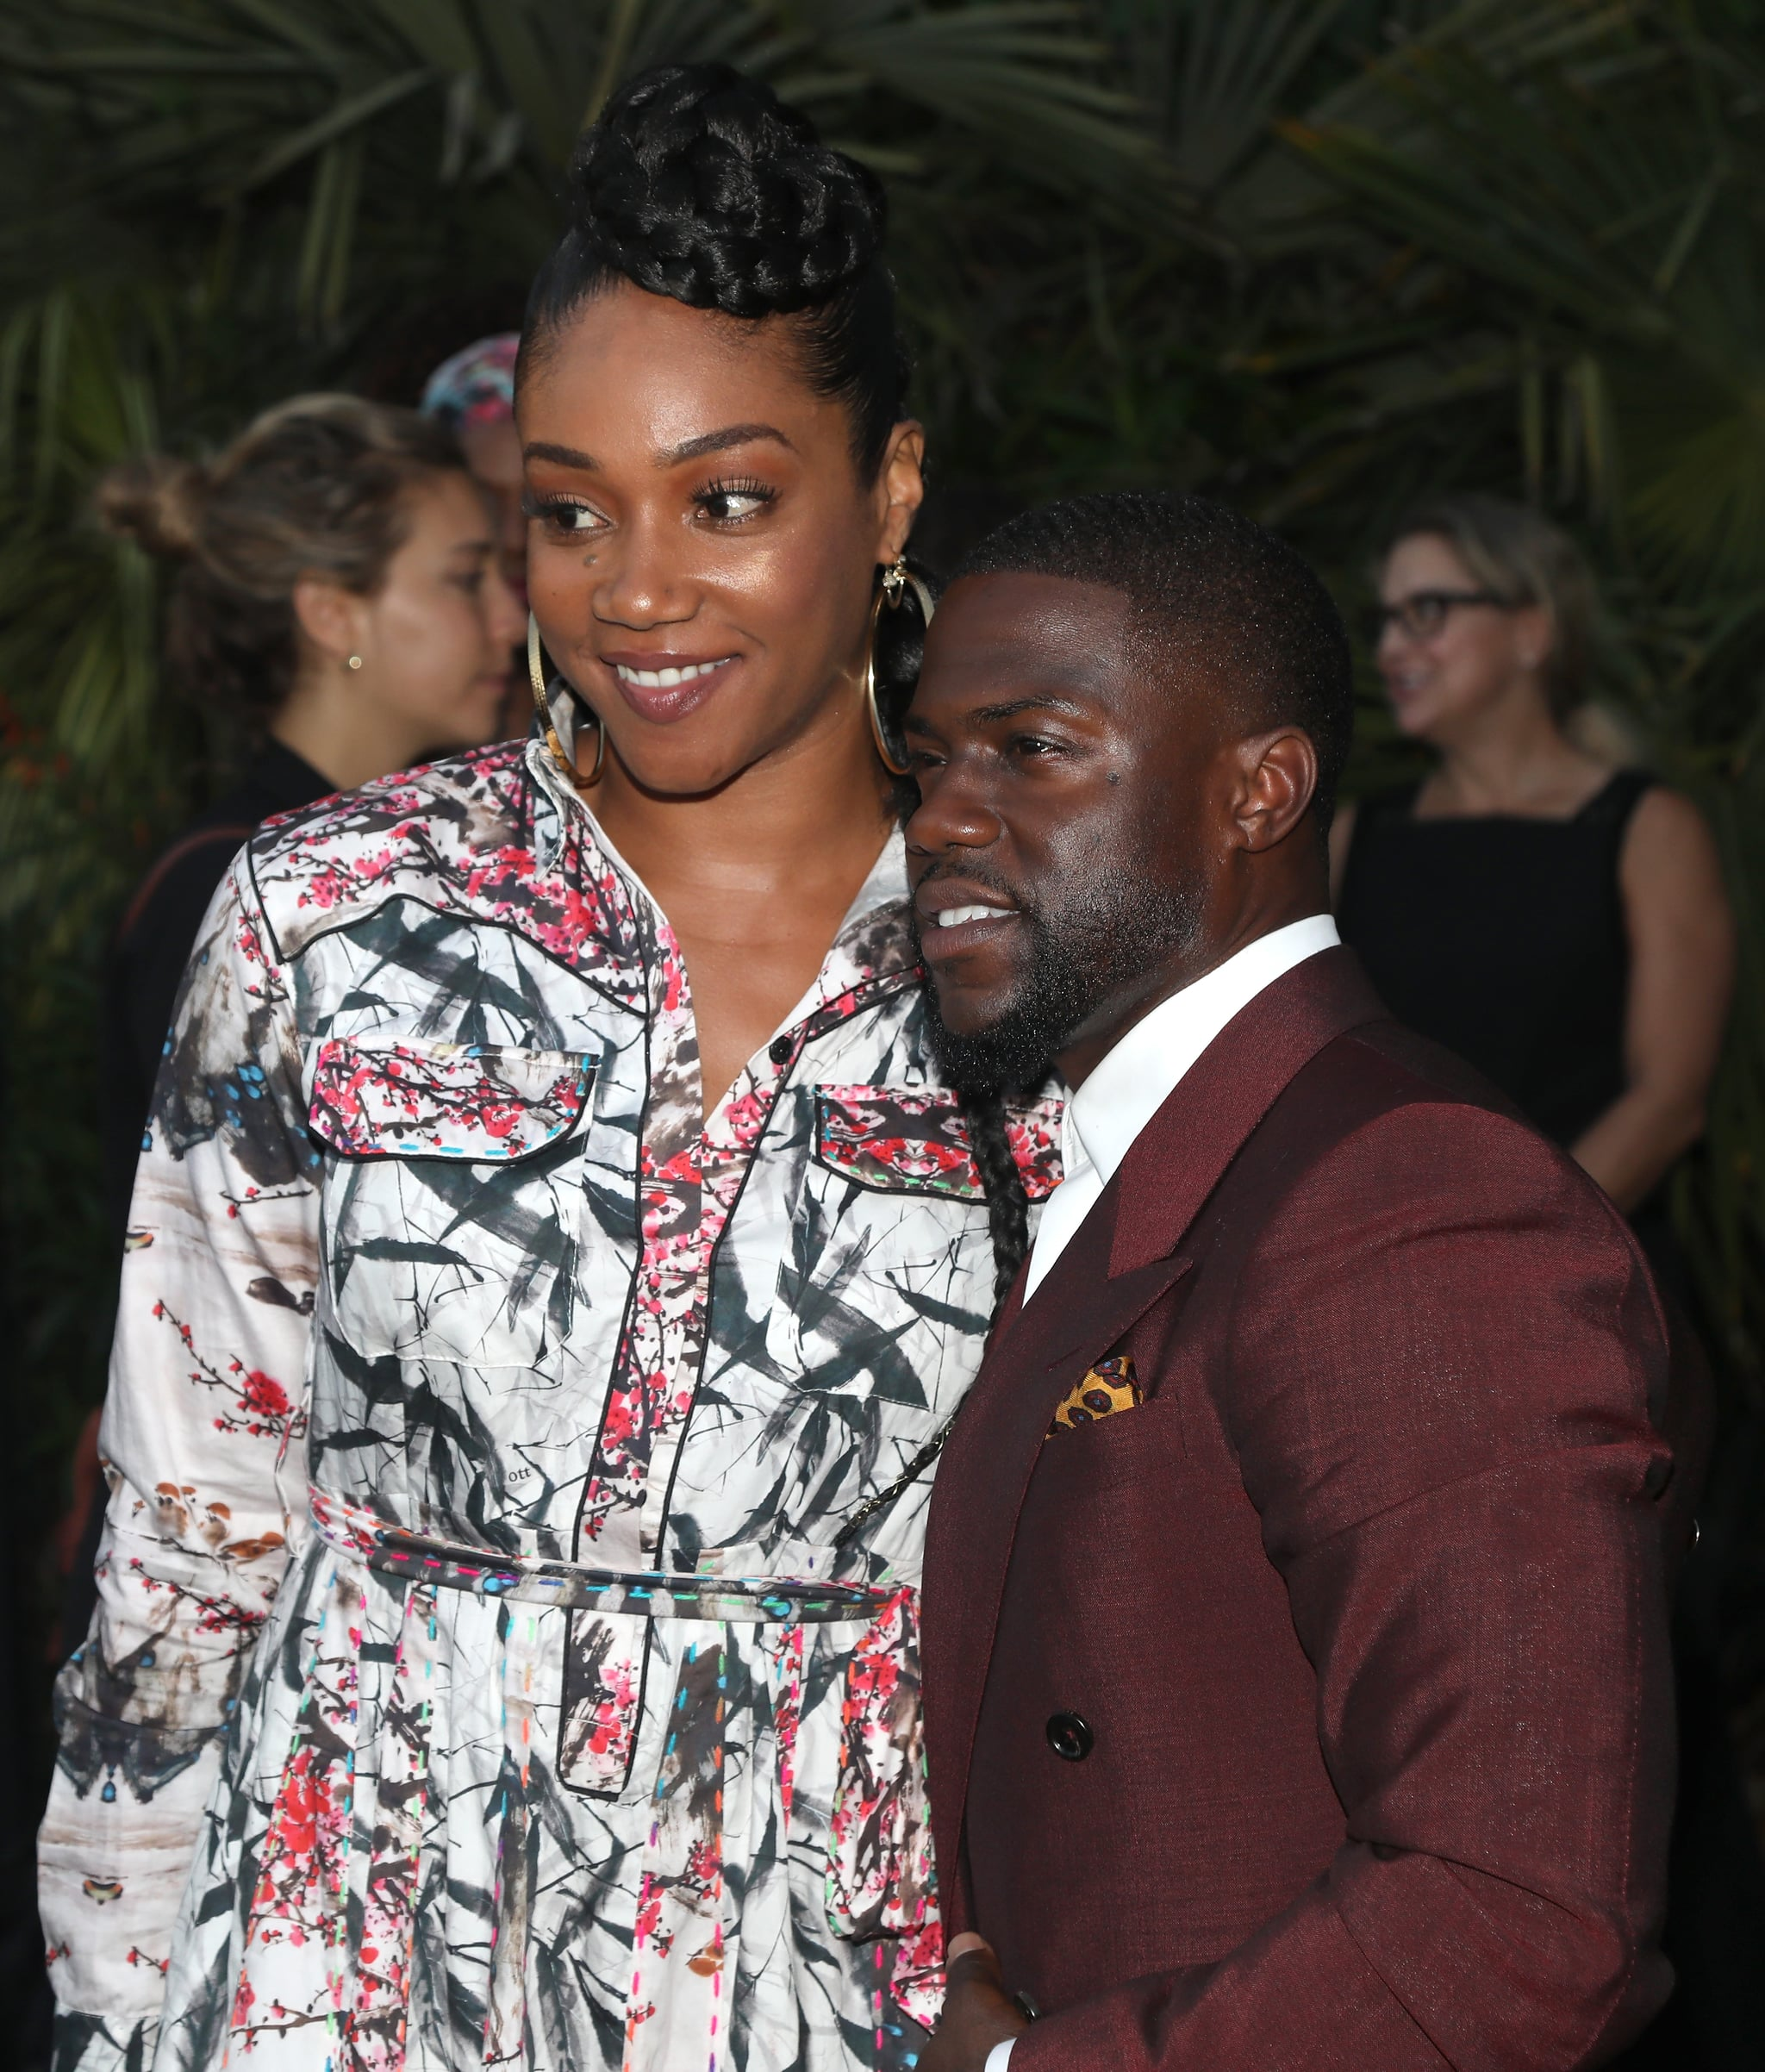 BEVERLY HILLS, CA - AUGUST 03:  Tiffany Haddish and Kevin Hart attend Kevin Hart And Jon Feltheimer Host Launch Of Laugh Out Loud at a Private Residence on August 3, 2017 in Beverly Hills, California.  (Photo by Jerritt Clark/WireImage)